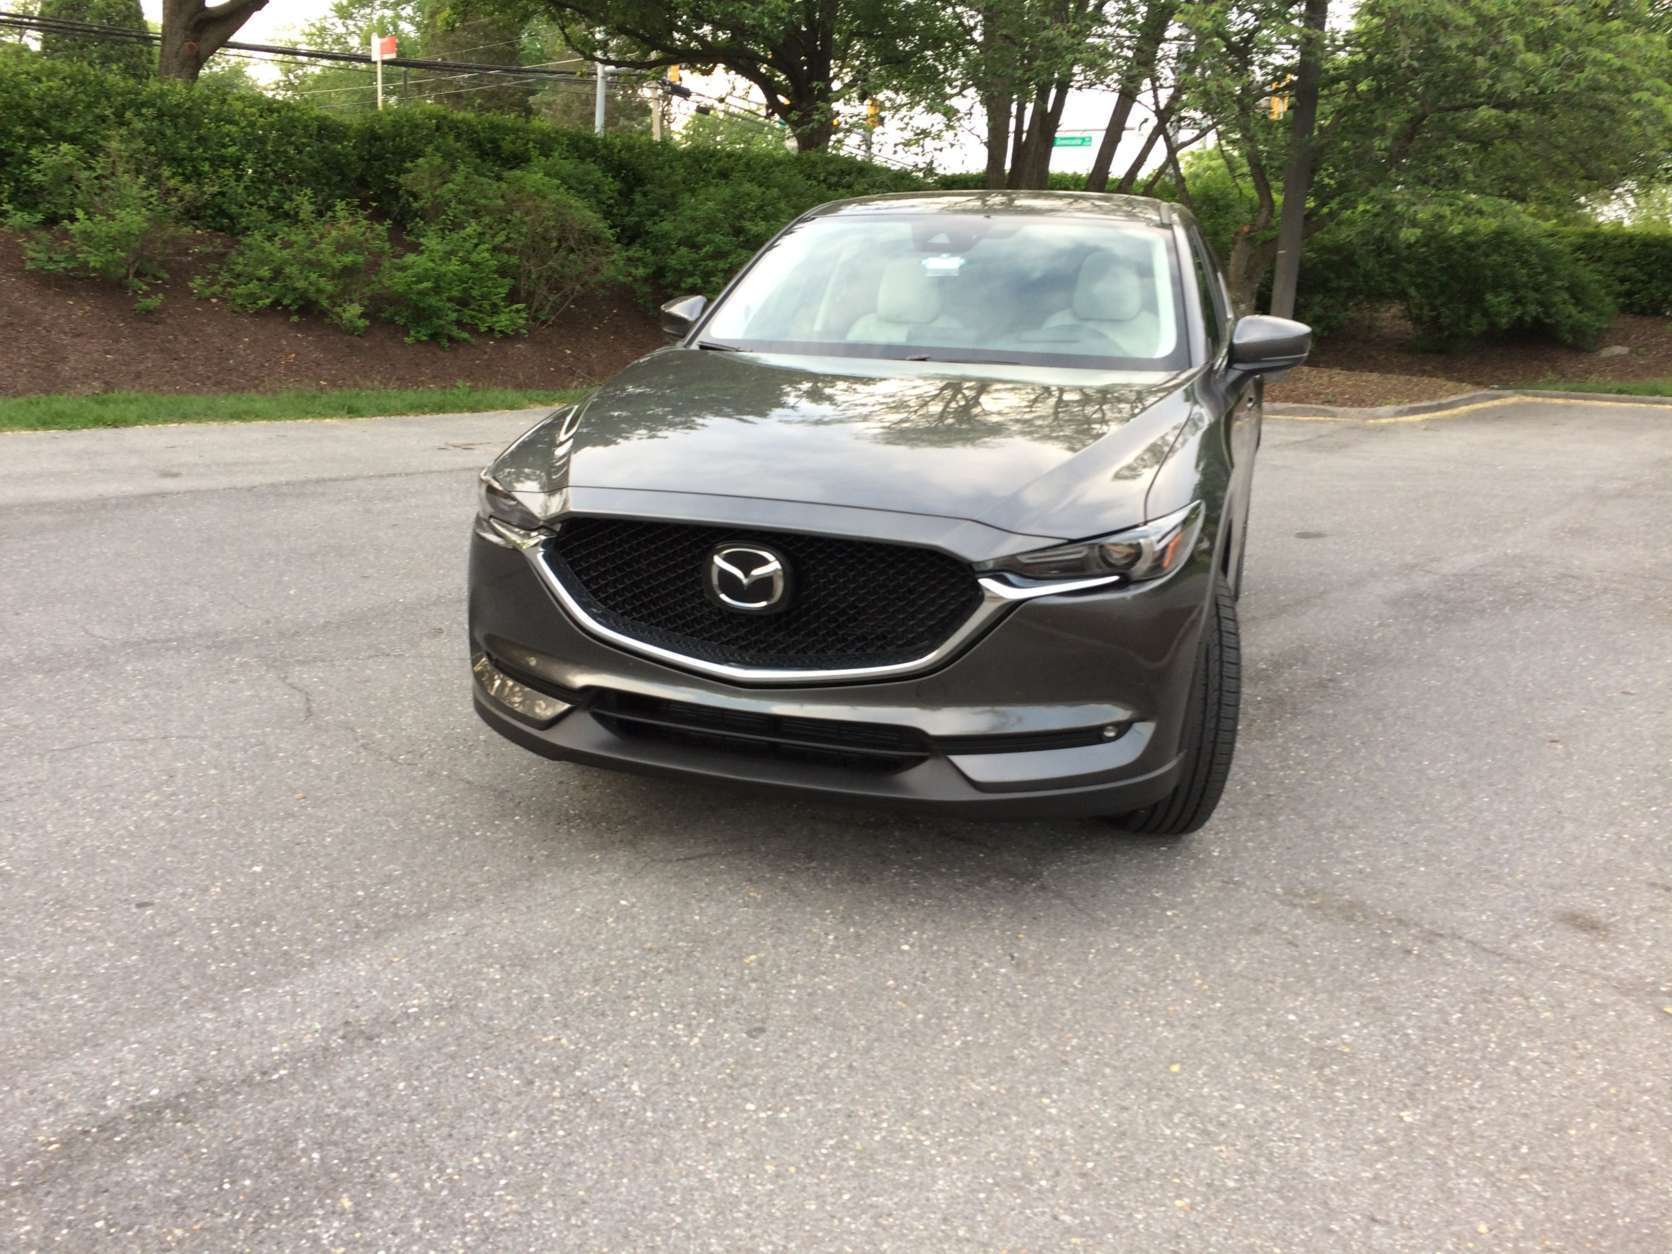 The 2017 Mazda CX-5 Grand Touring has updated its front end with new headlights and a new grill. (WTOP/Mike Parris)